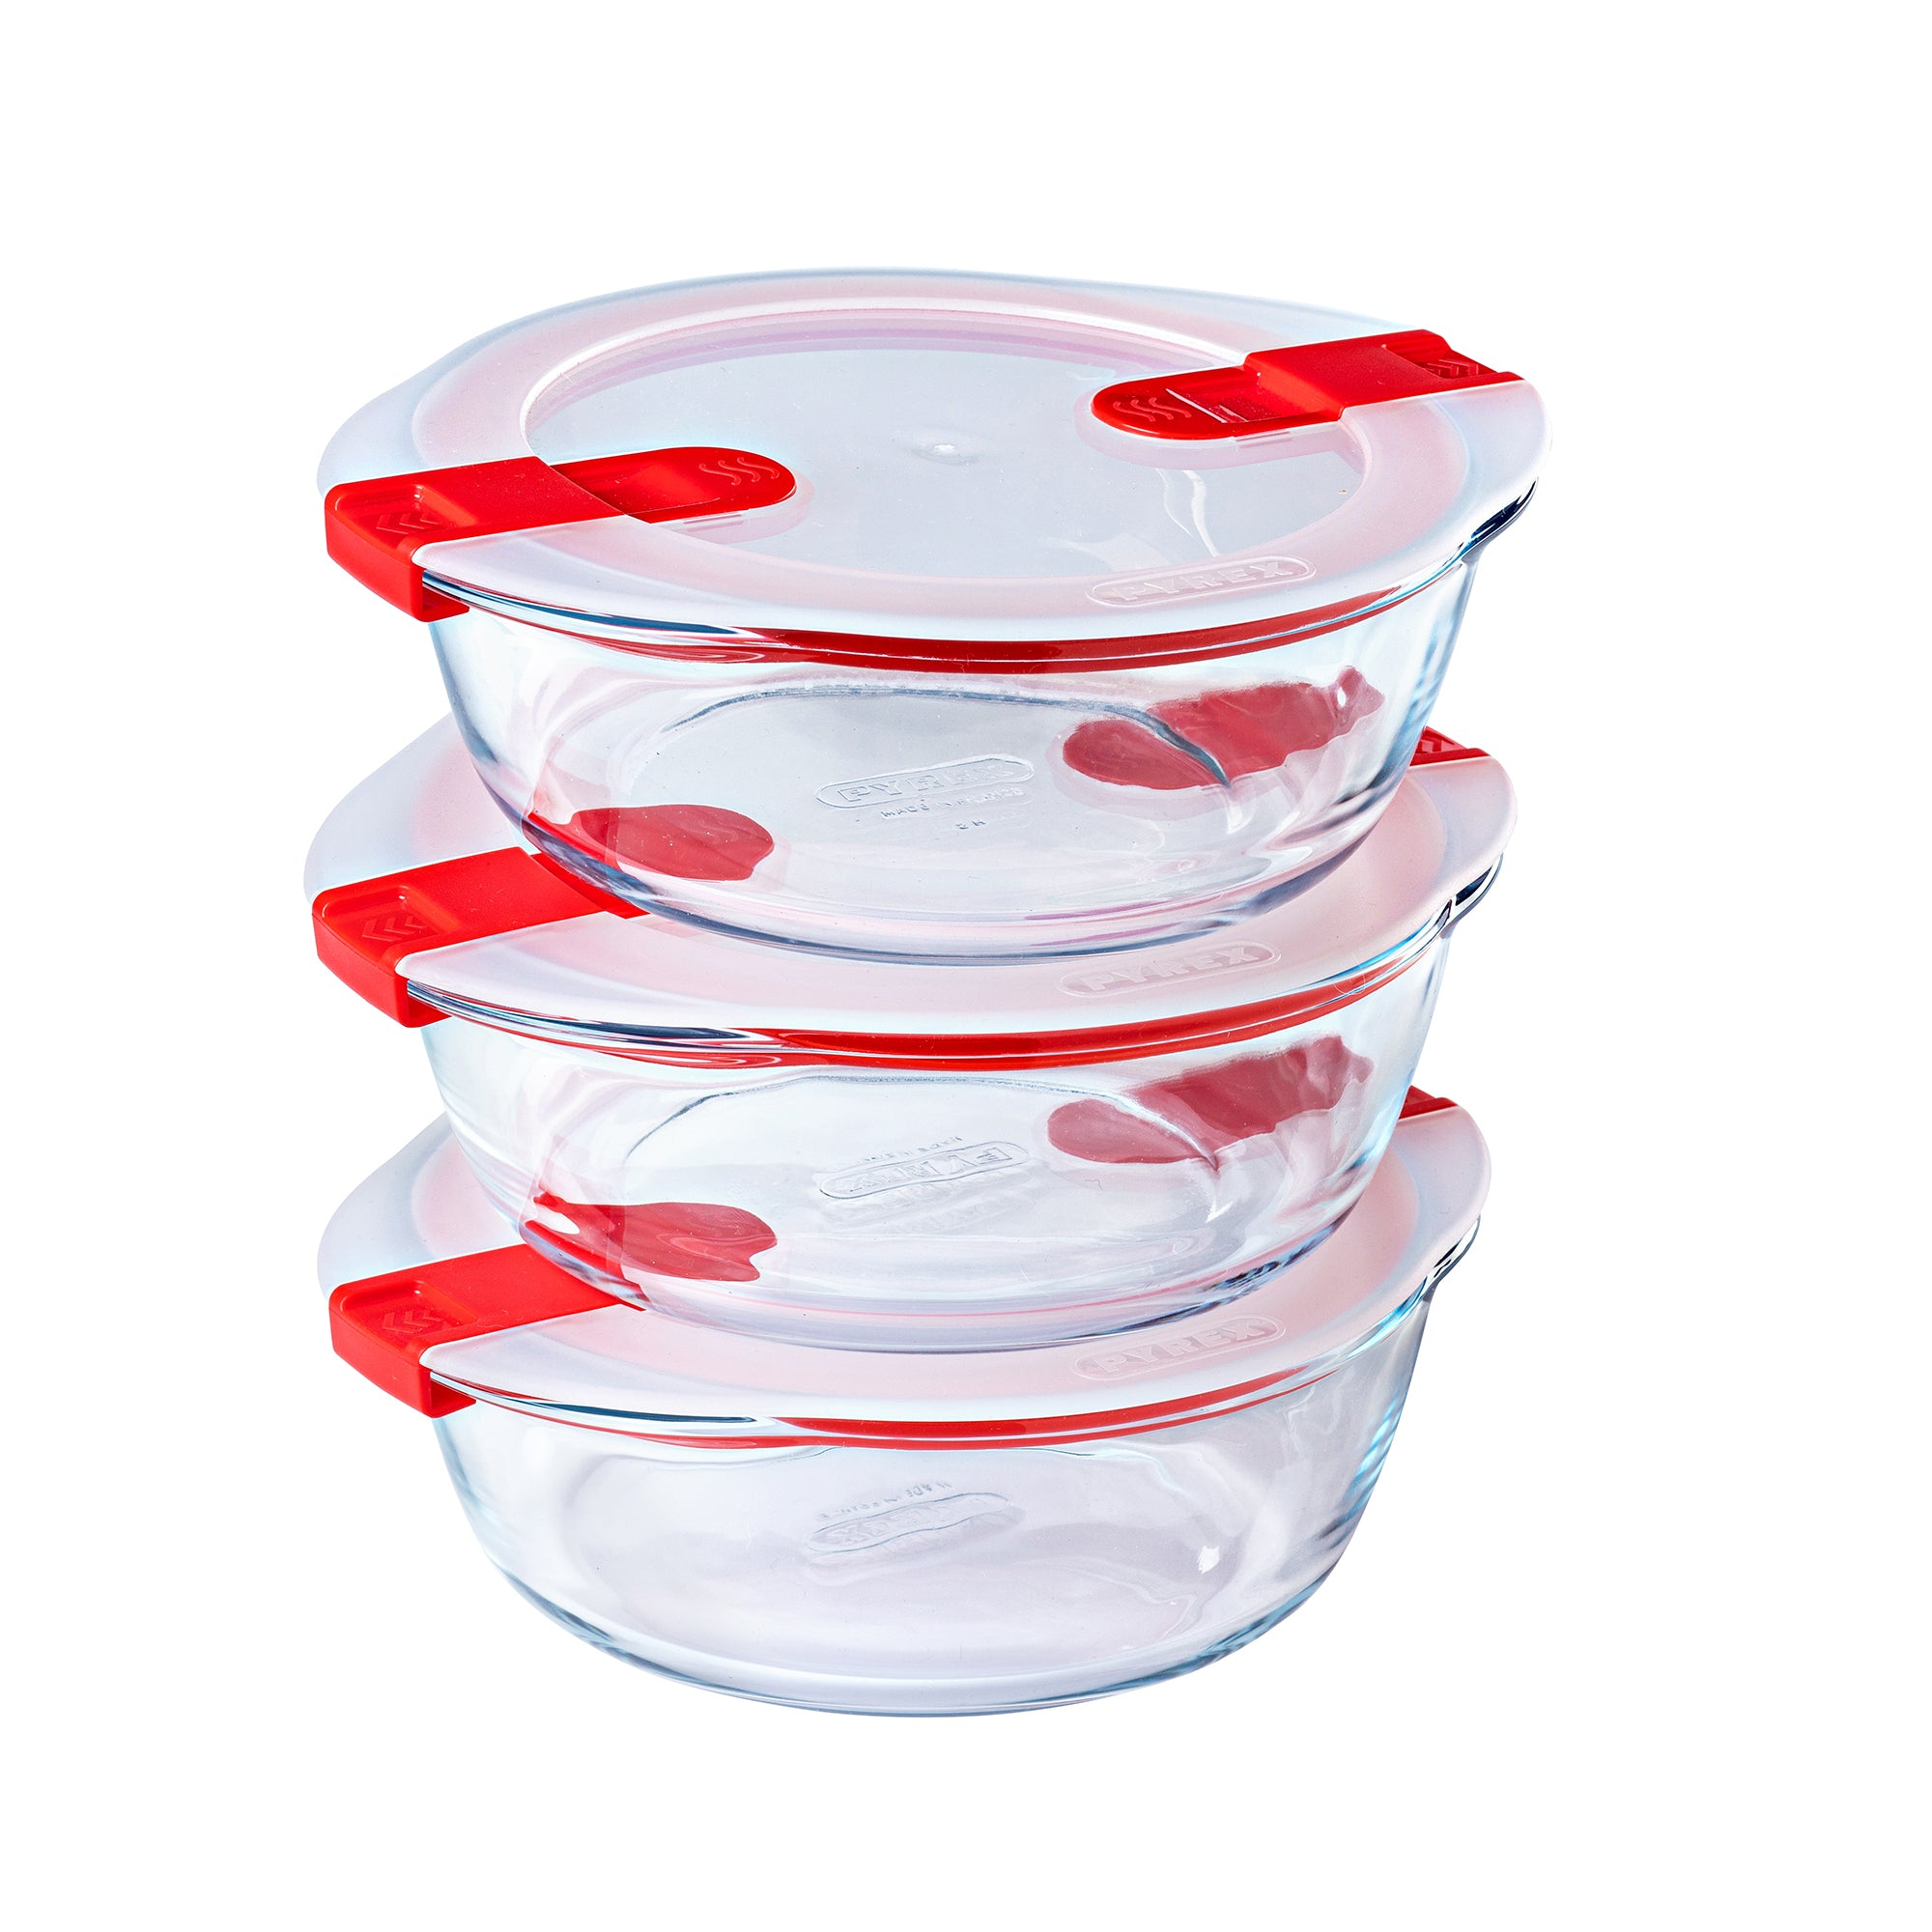 Lot de 3 plats ronds Pyrex® Cook & Heat 20 x 18cm